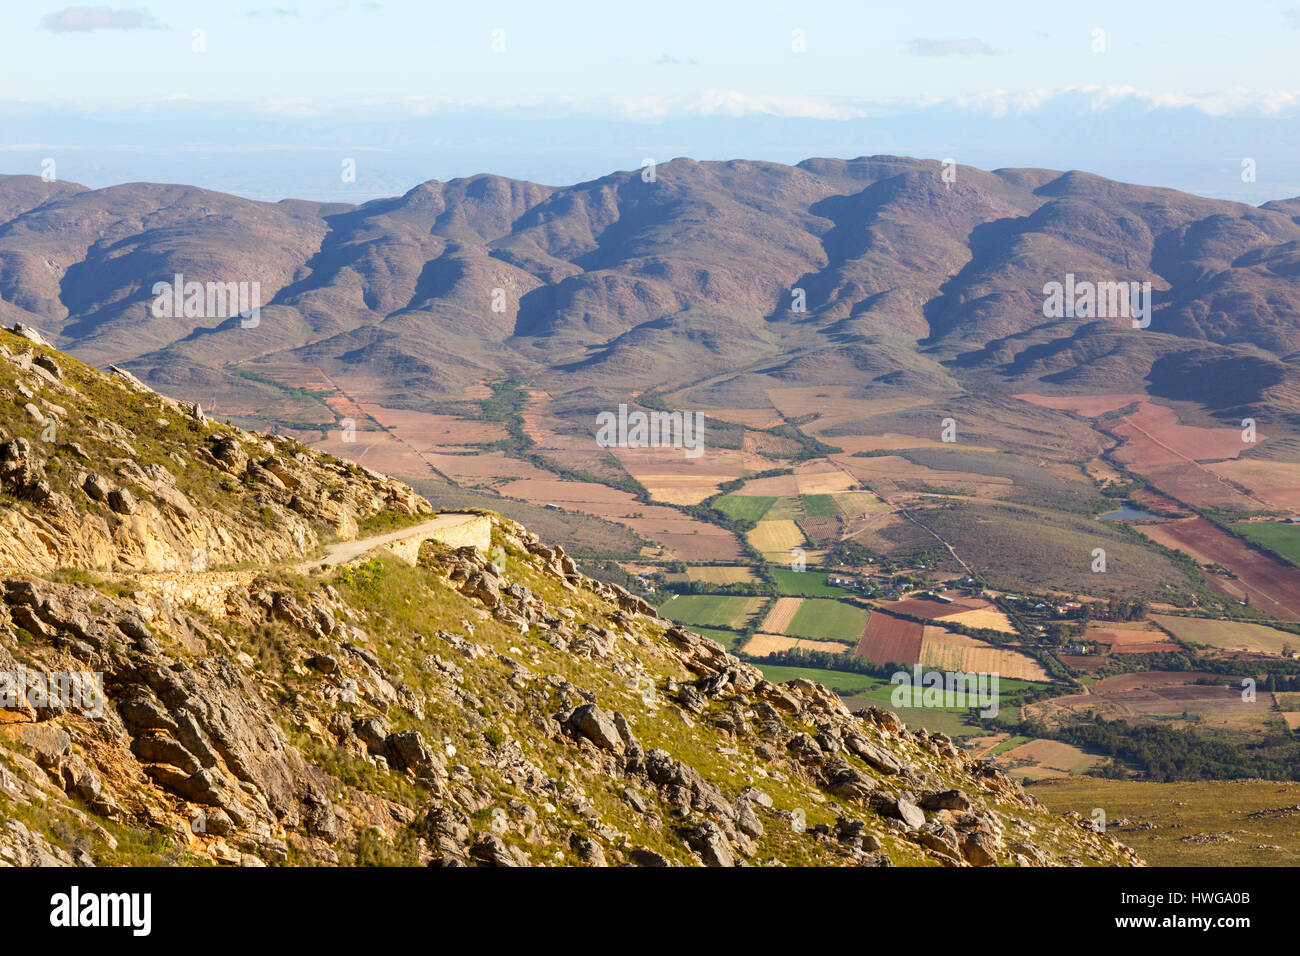 Swartberg Pass South Africa, a mountainous scenic drive in the Karoo, South Africa - Stock Image